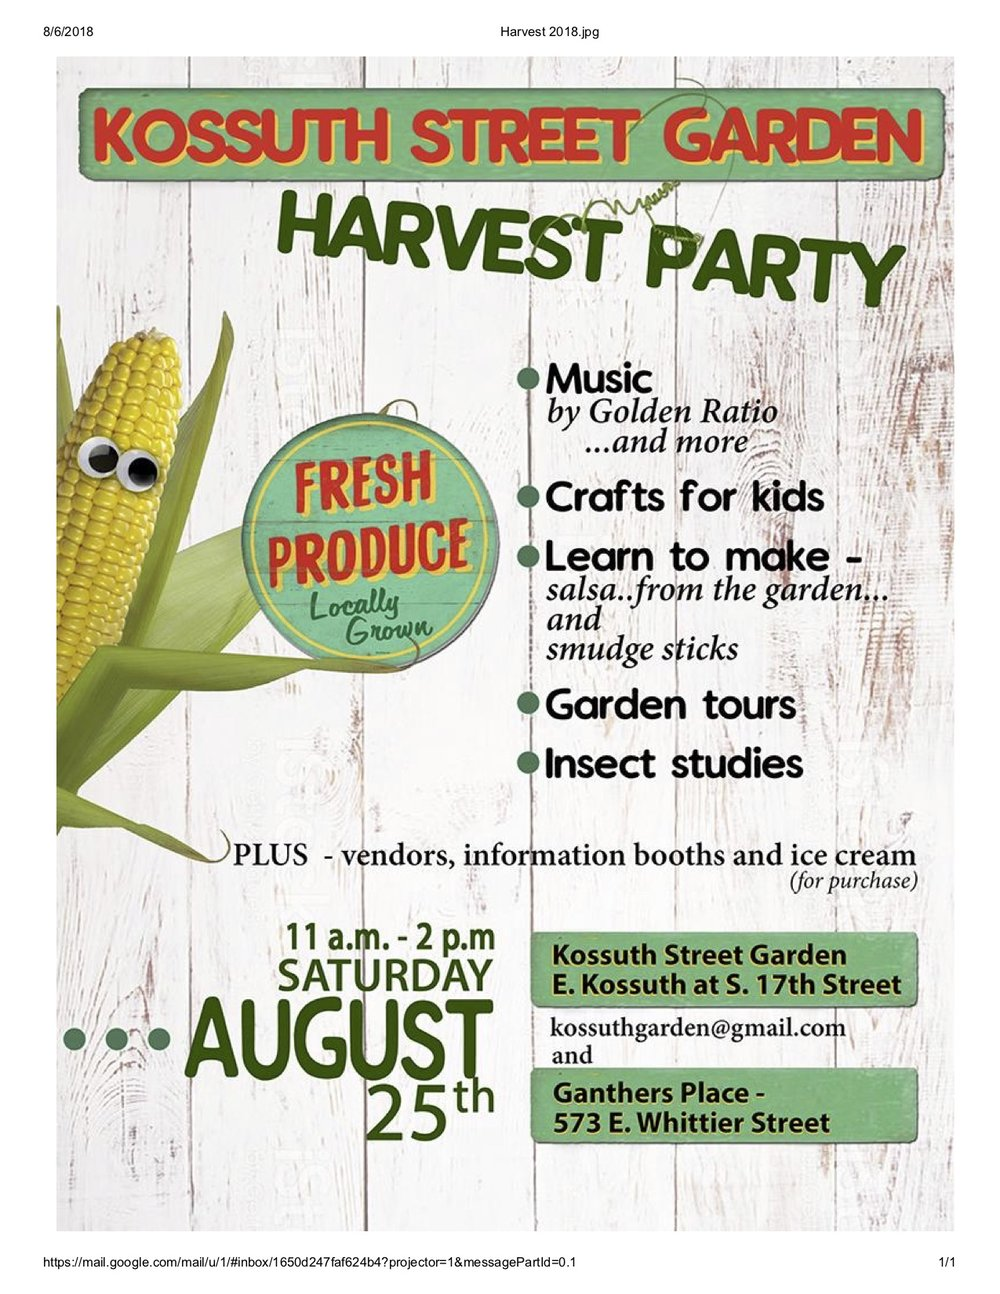 KSG 2018 Harvest Party Flyer (1).jpg